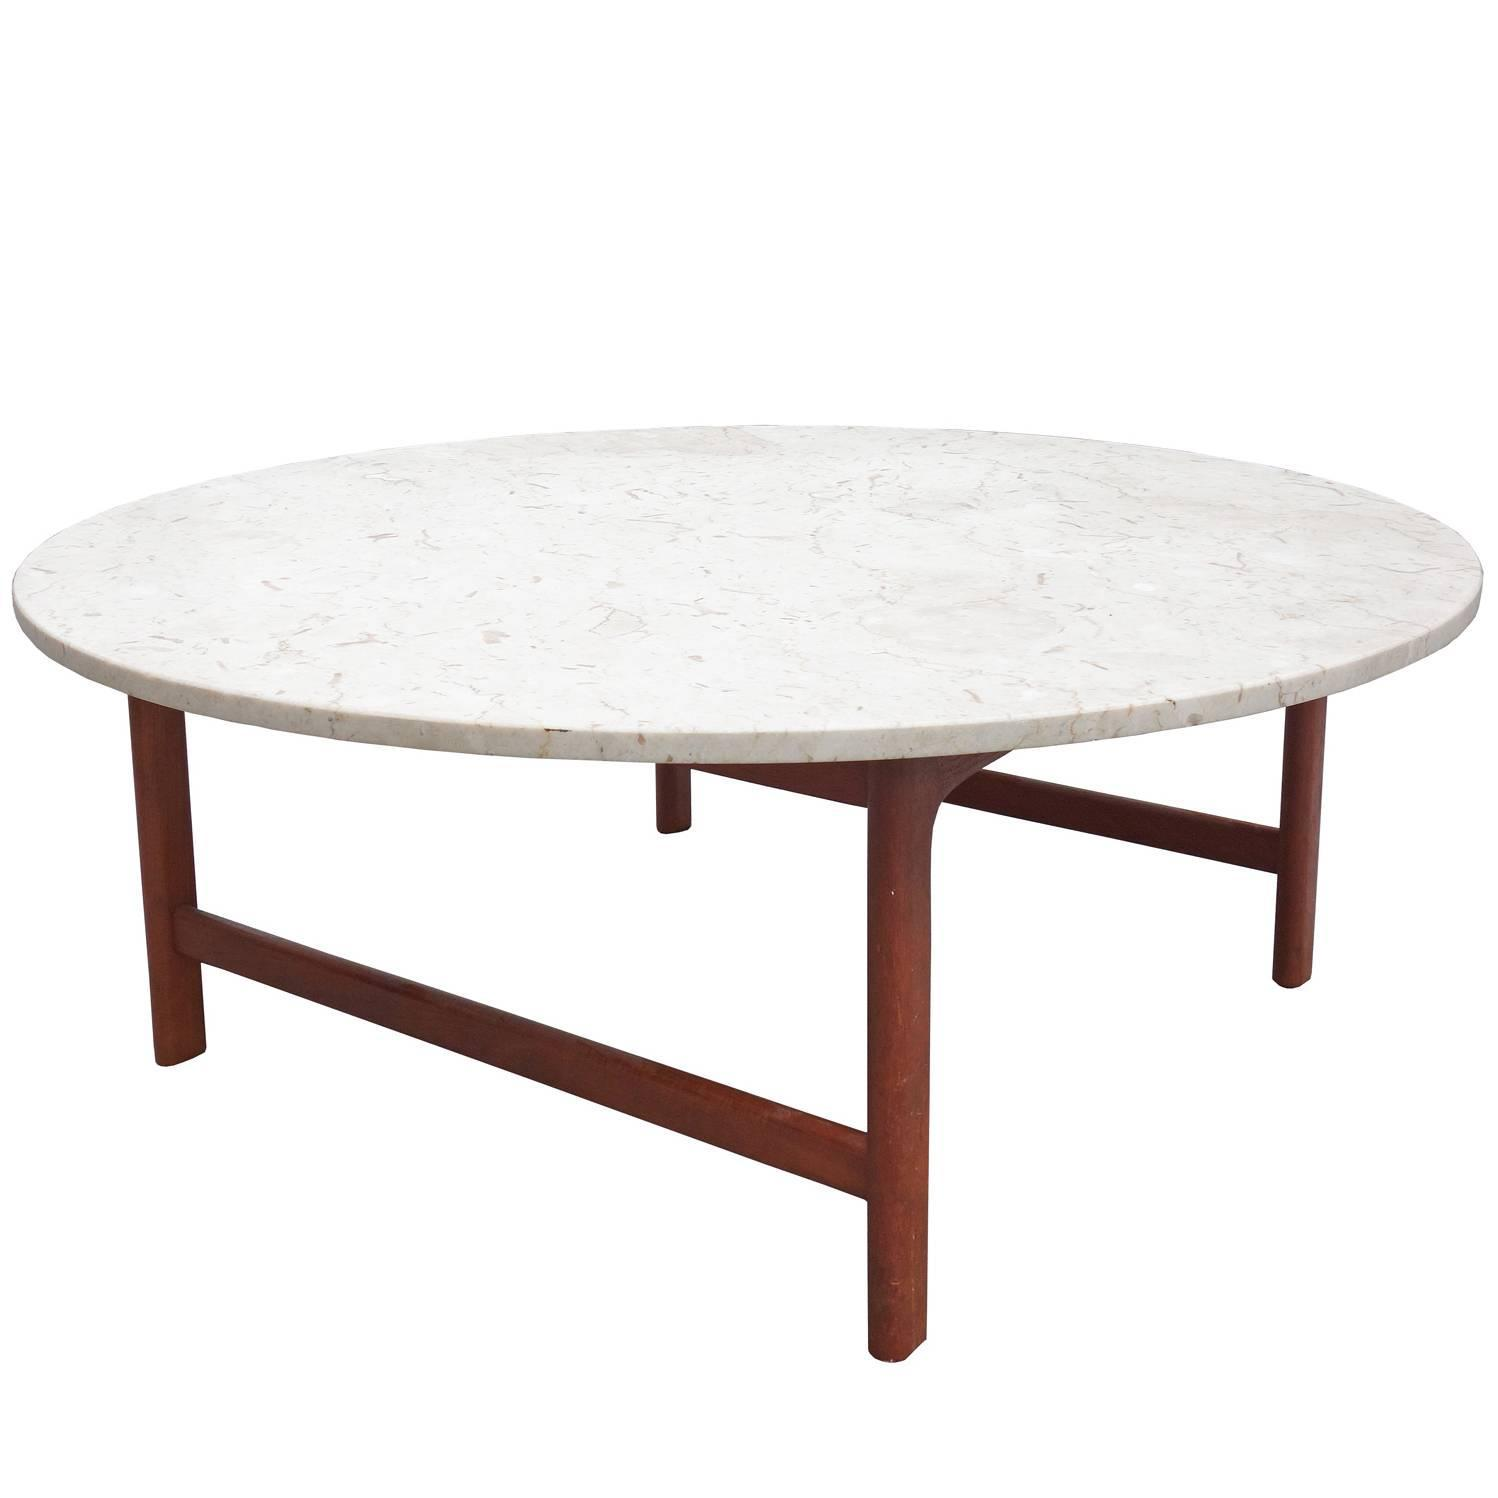 Dux Coffee Table With Travertine Top At 1stdibs